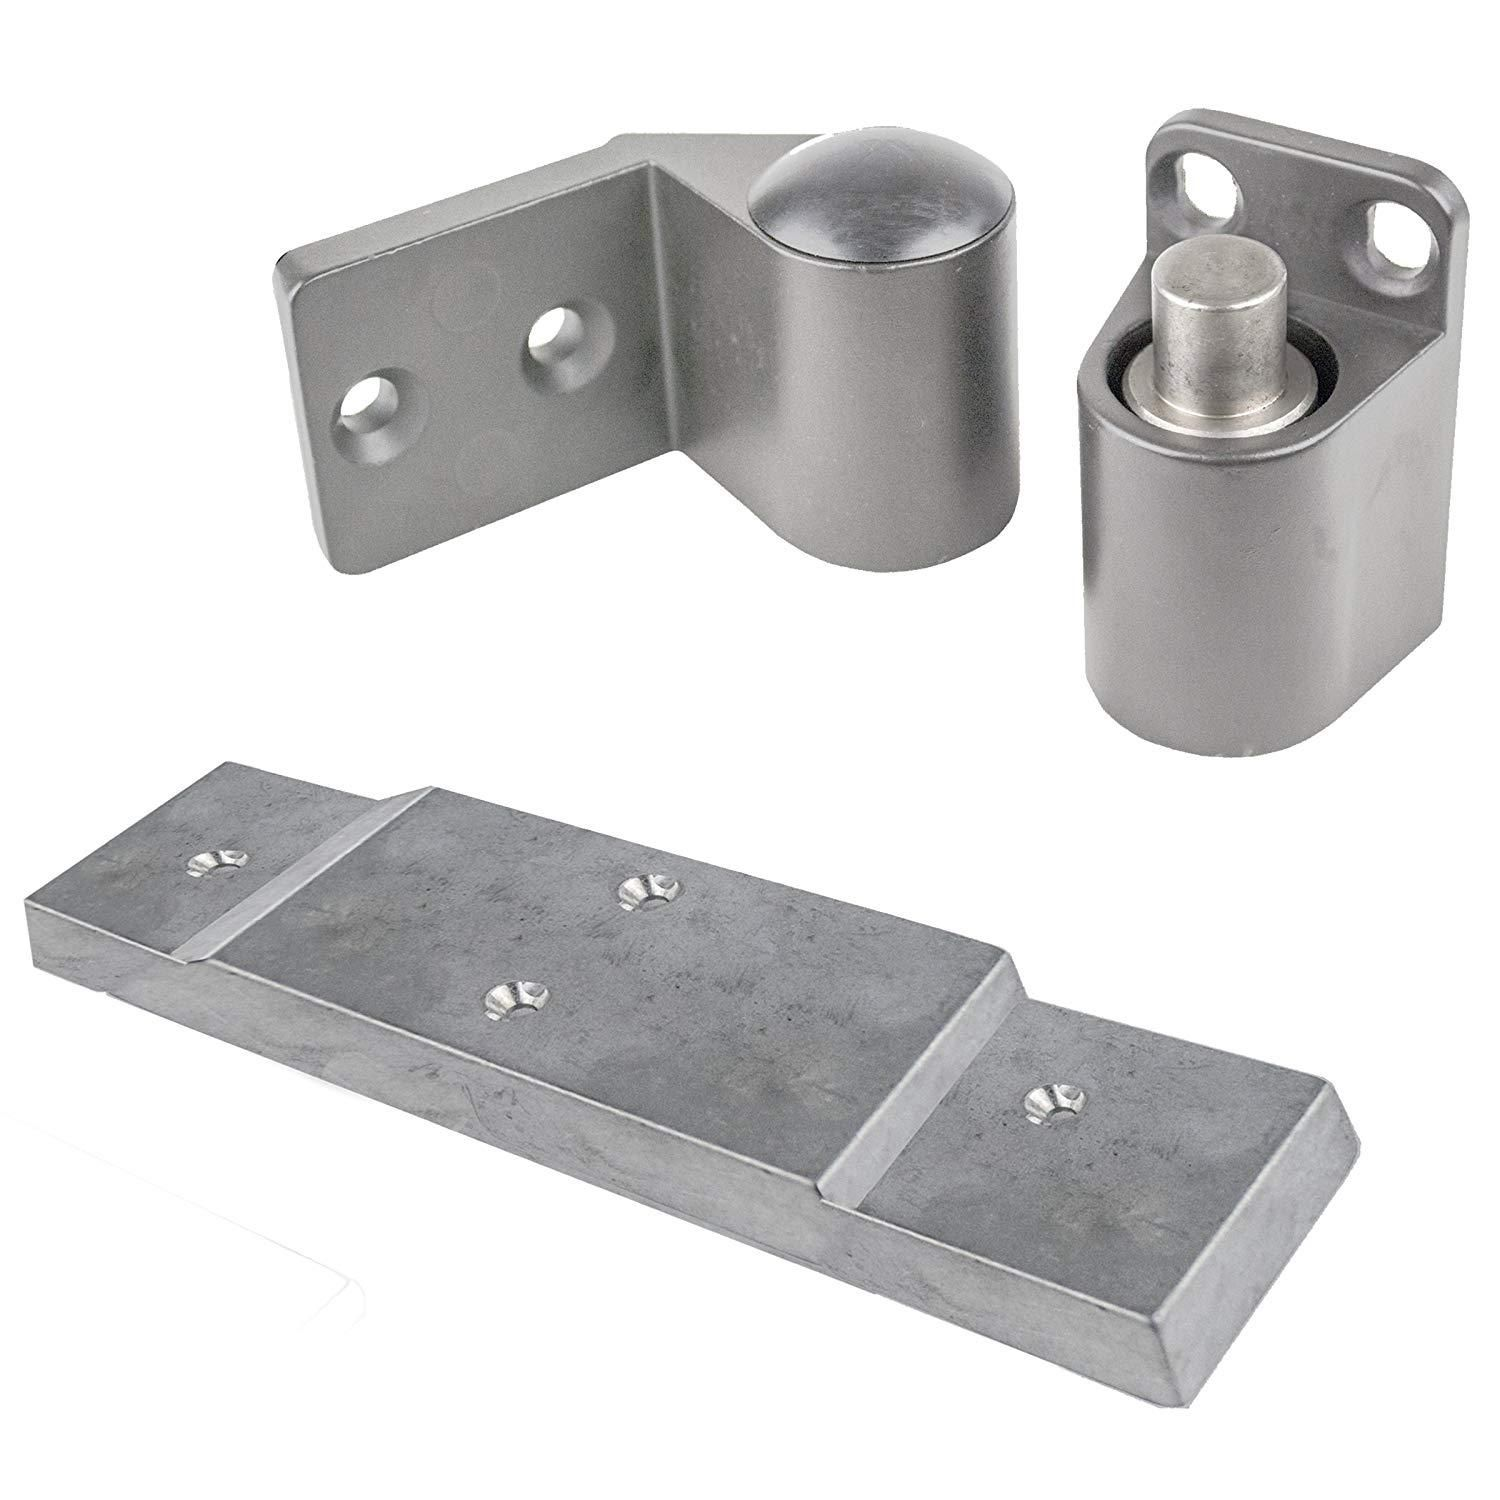 Intermediate Pivot Door Hinges Arch Amarlite Style Offset For Aluminum Doors Face Frame Or 1 8 Recessed Applicatio Pivot Doors Aluminium Doors Door Hinges